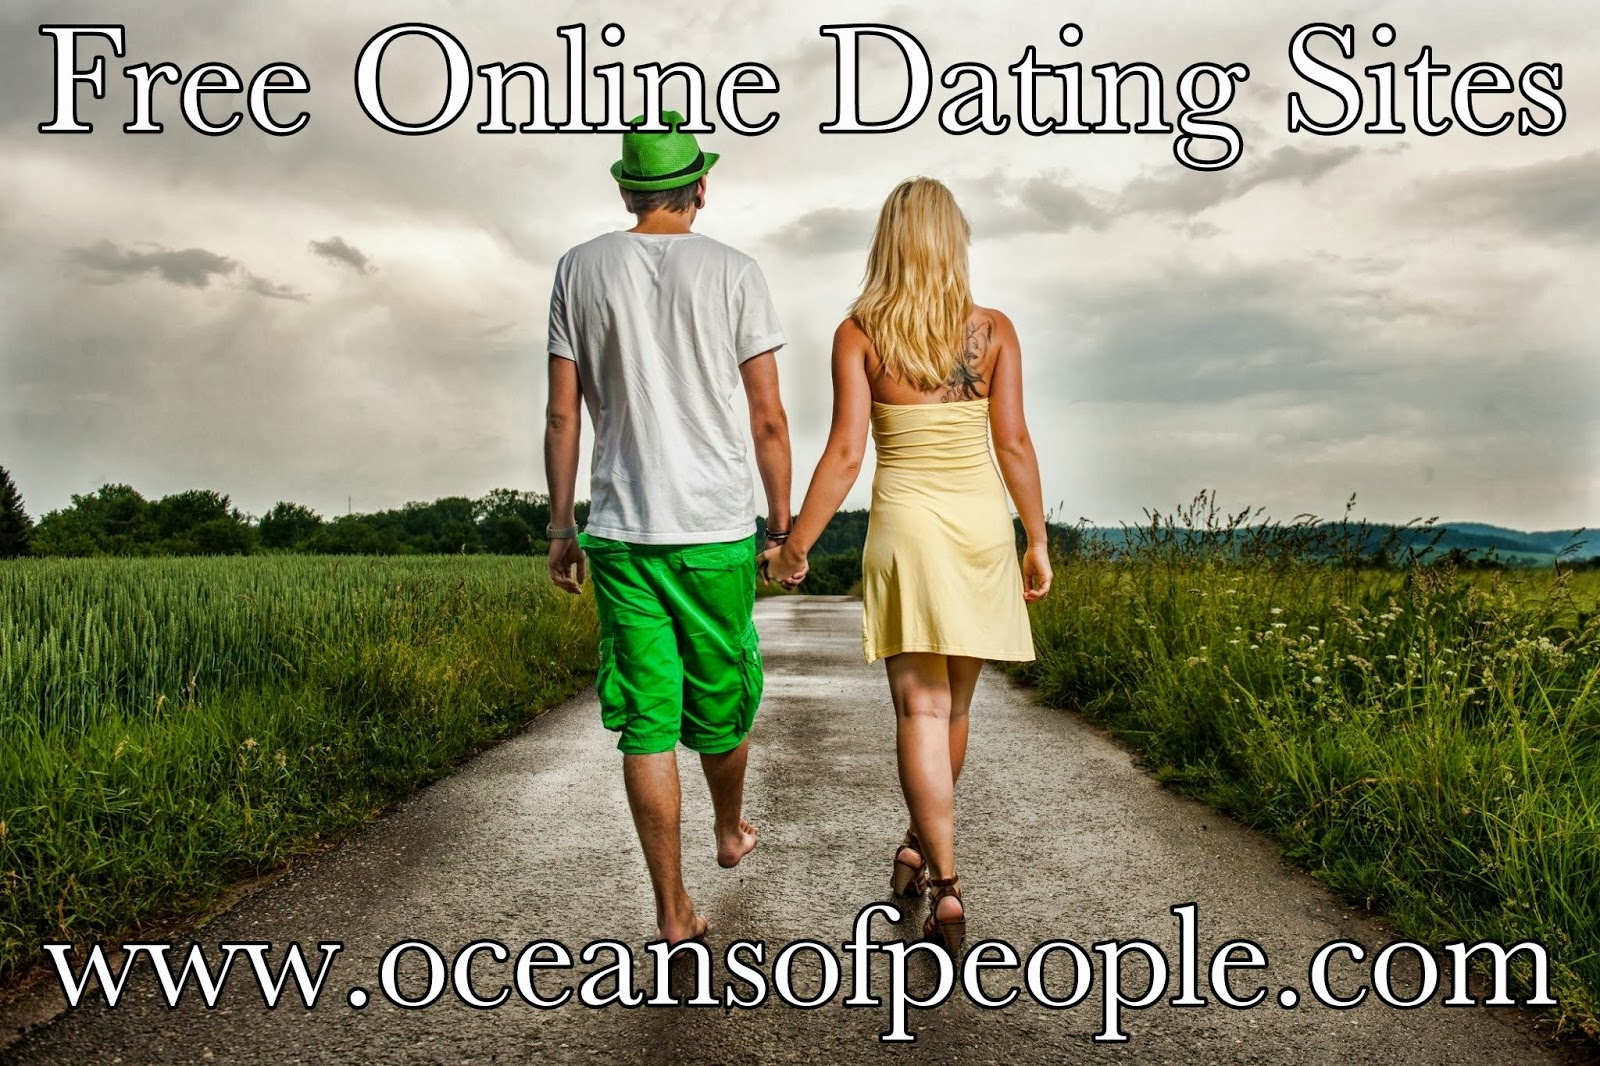 100% free online dating in nazlini 100% totally free dating meet attractive singles in your area completely free personals site chat, share photos and interests.